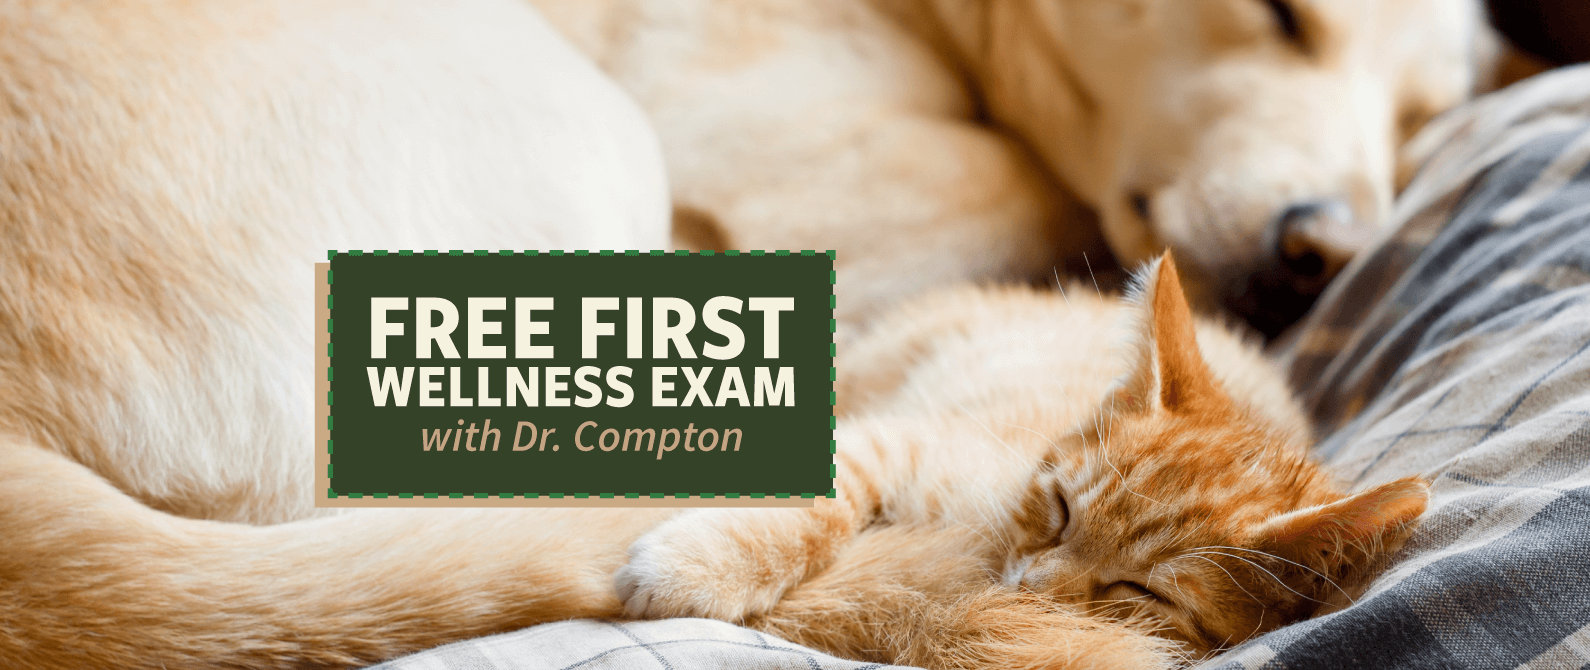 Free First Wellness Exam